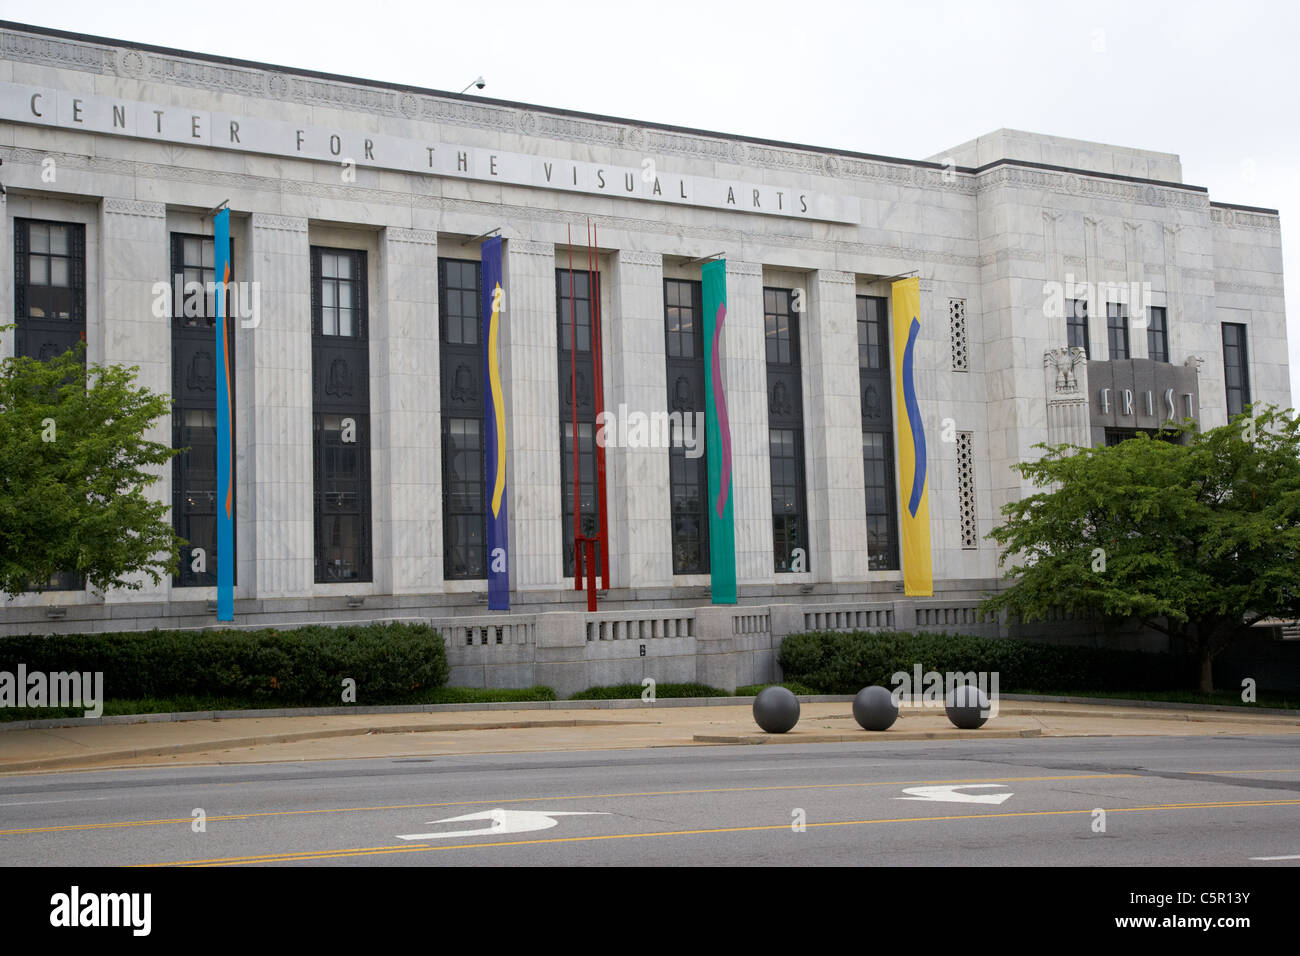 FRIST center for the visual arts building Nashville Tennessee USA - Stock Image